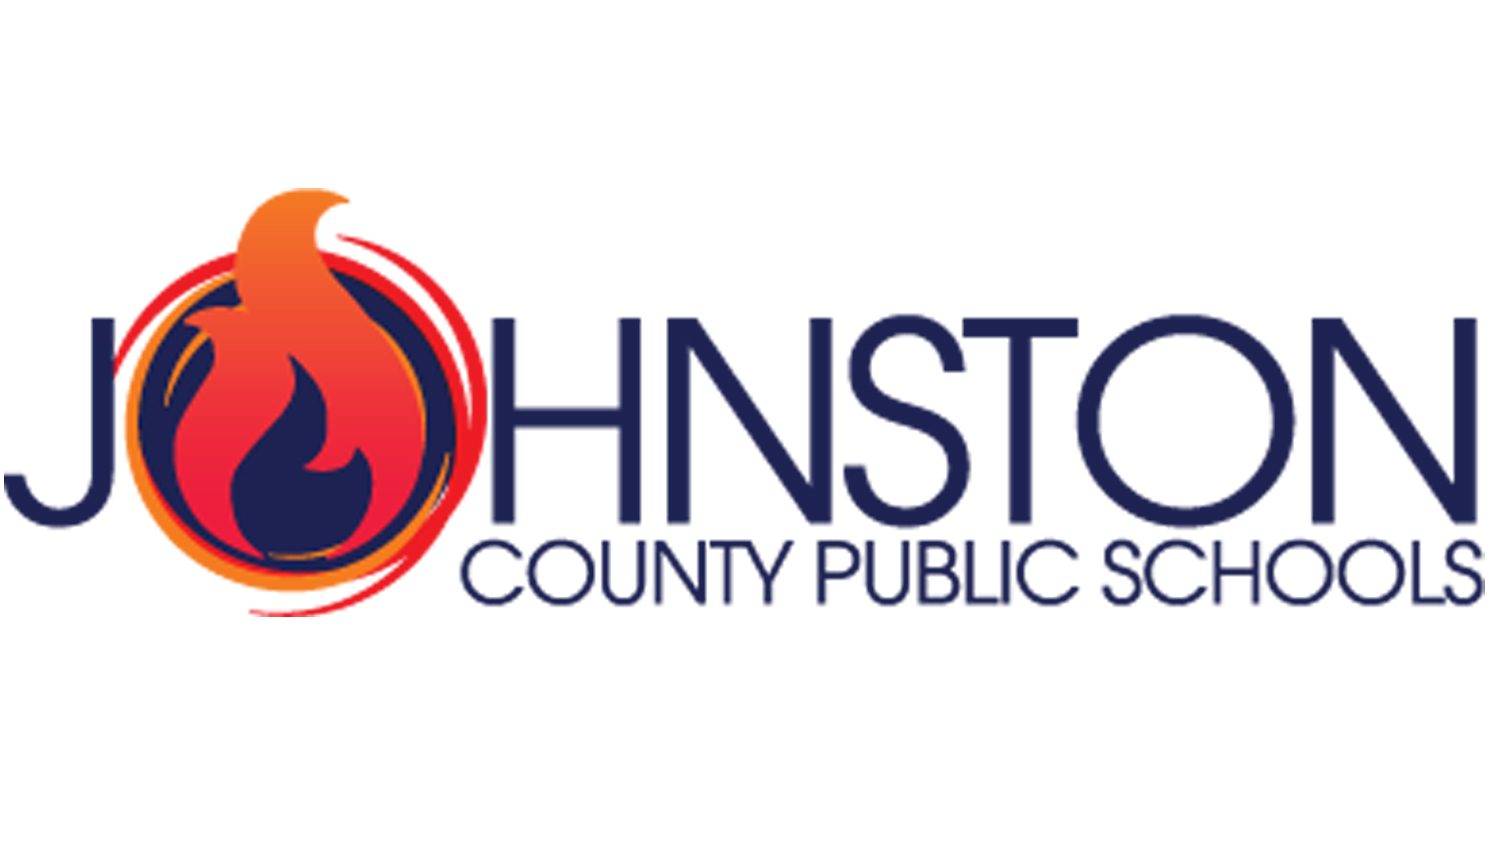 Johnston County Public Schools College Of Education NC